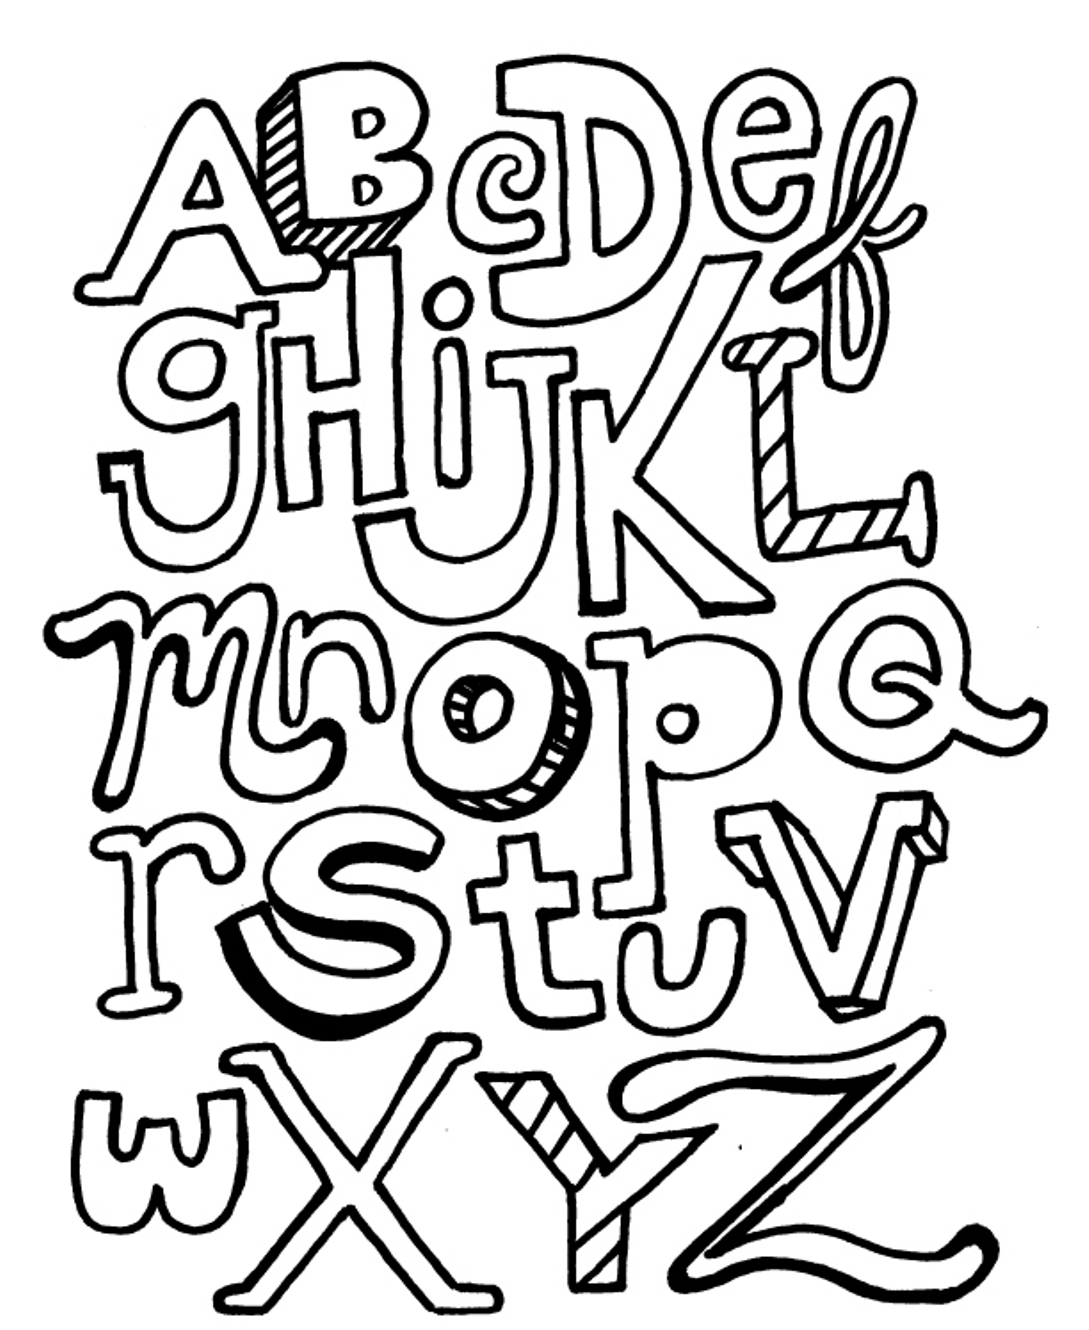 abc printable coloring pages free printable abc coloring pages for kids abc coloring printable pages